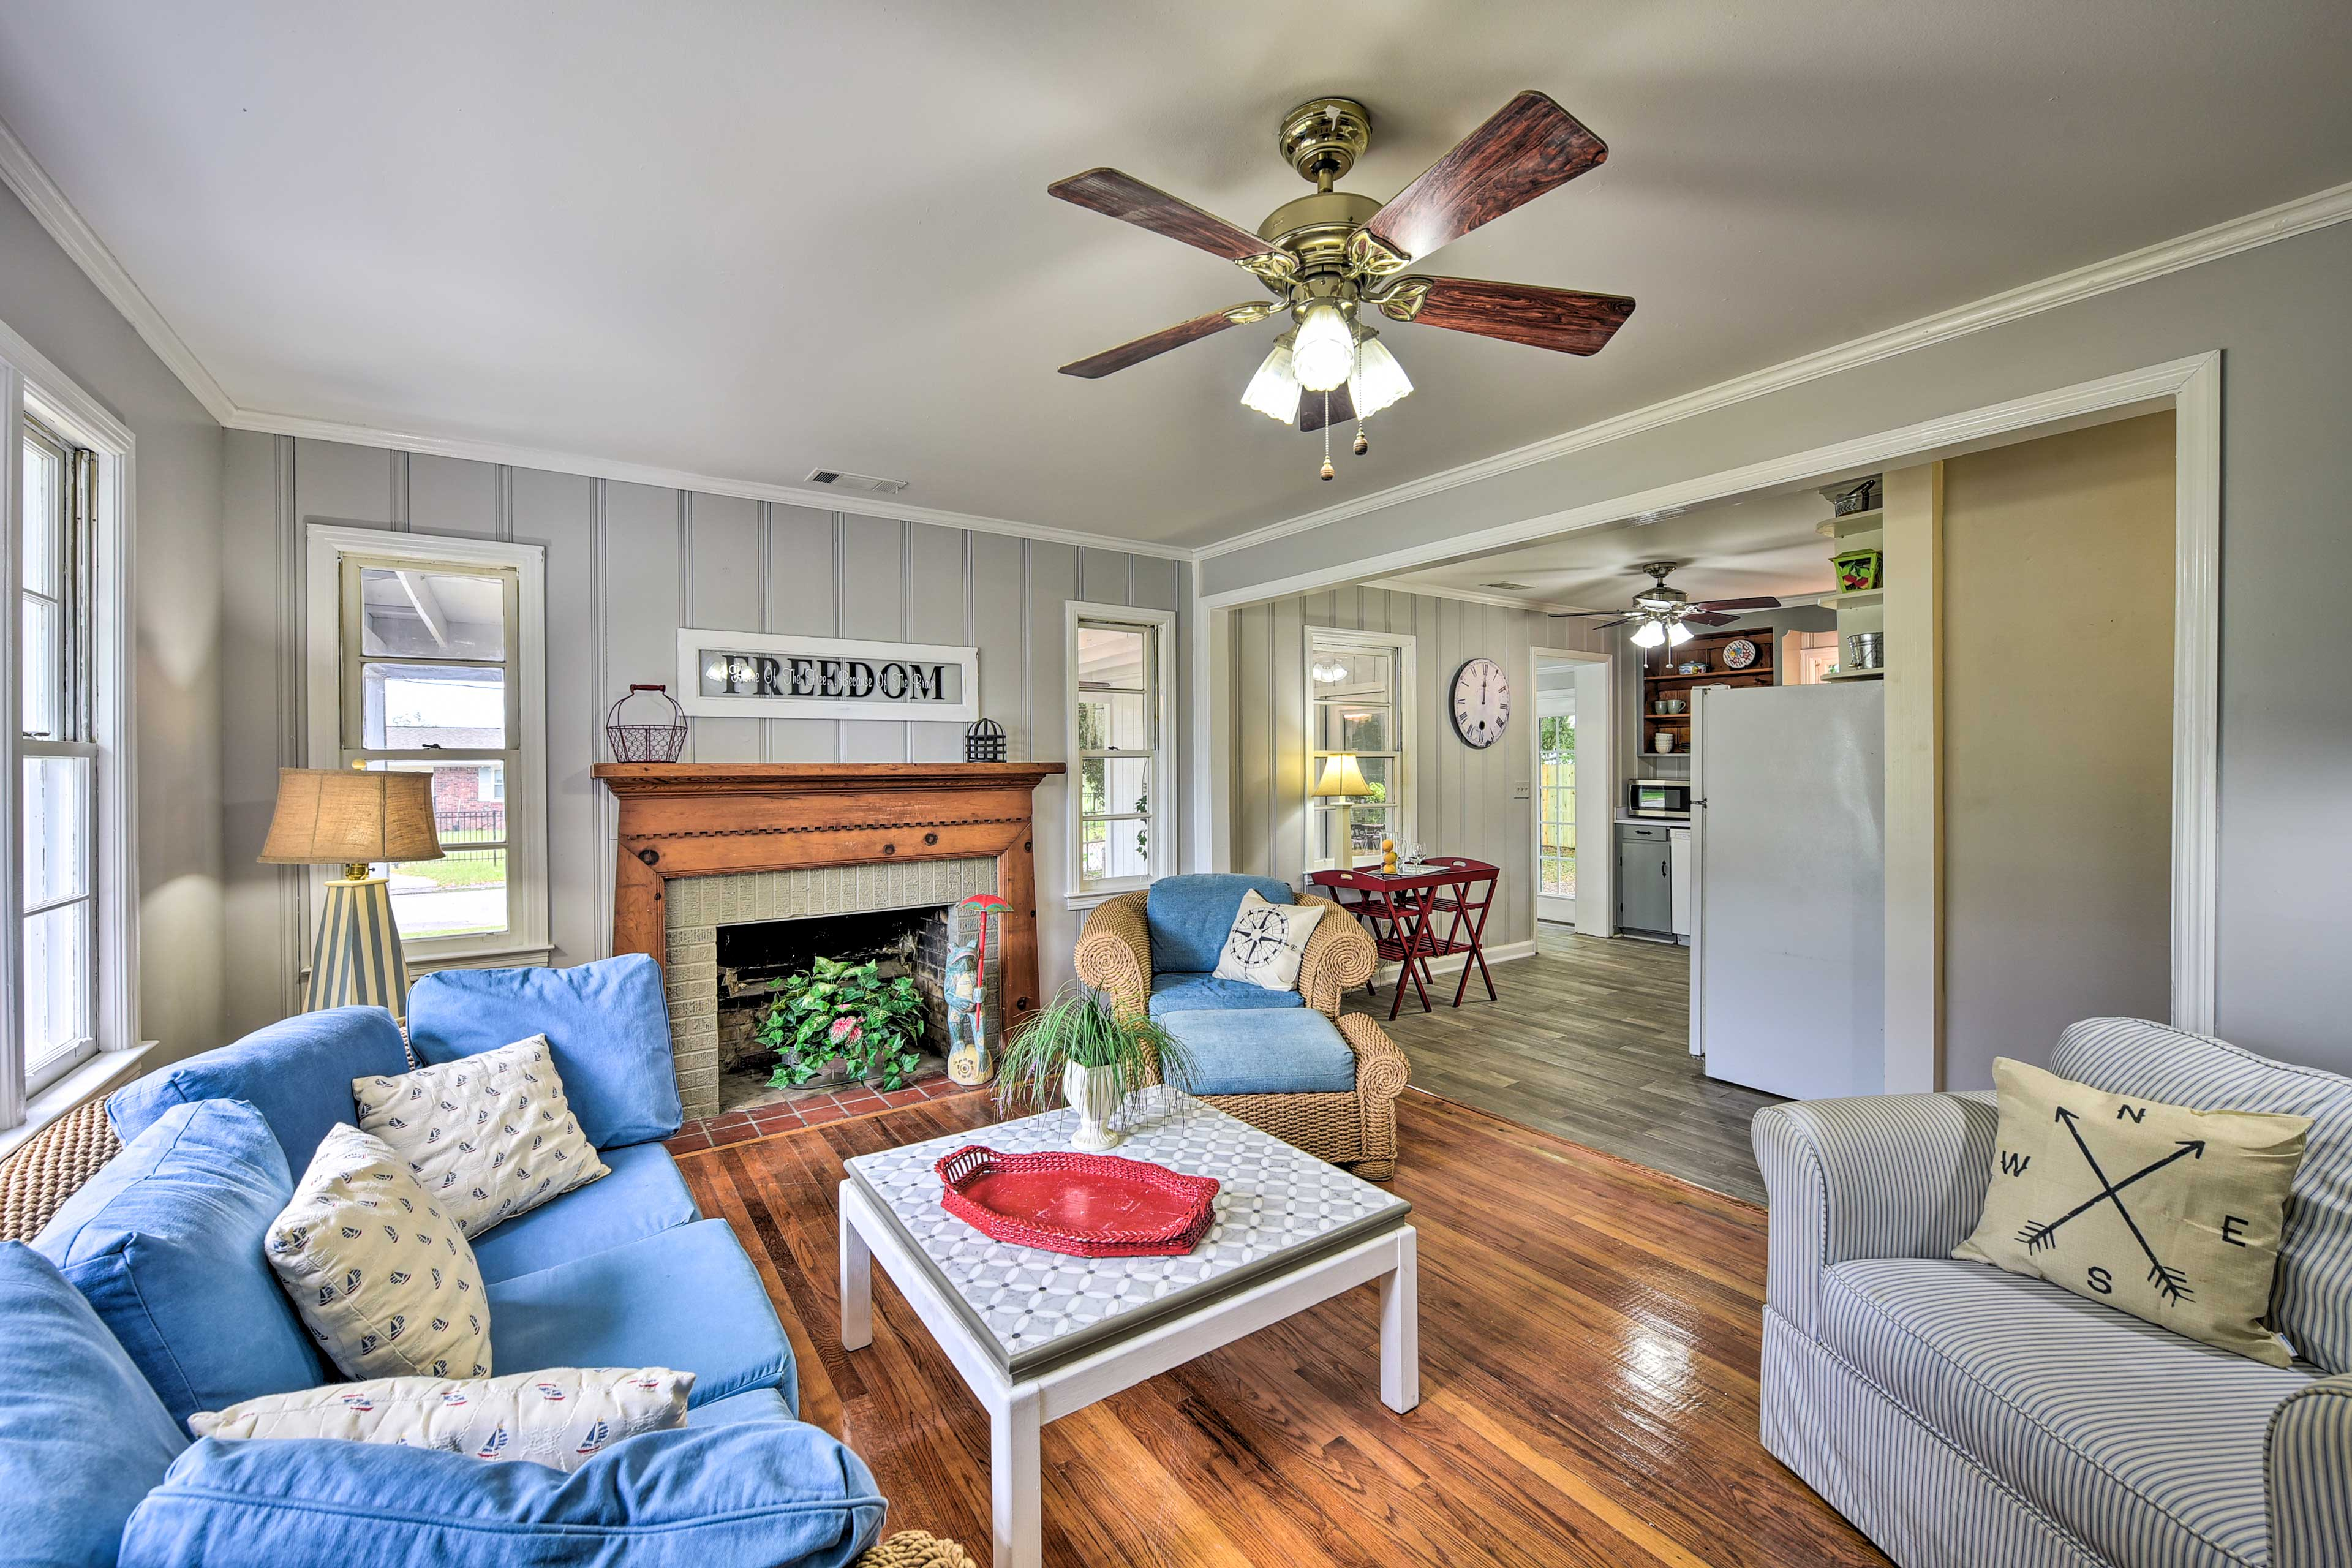 Come relax in this cozy living room before your Beaufort adventure!